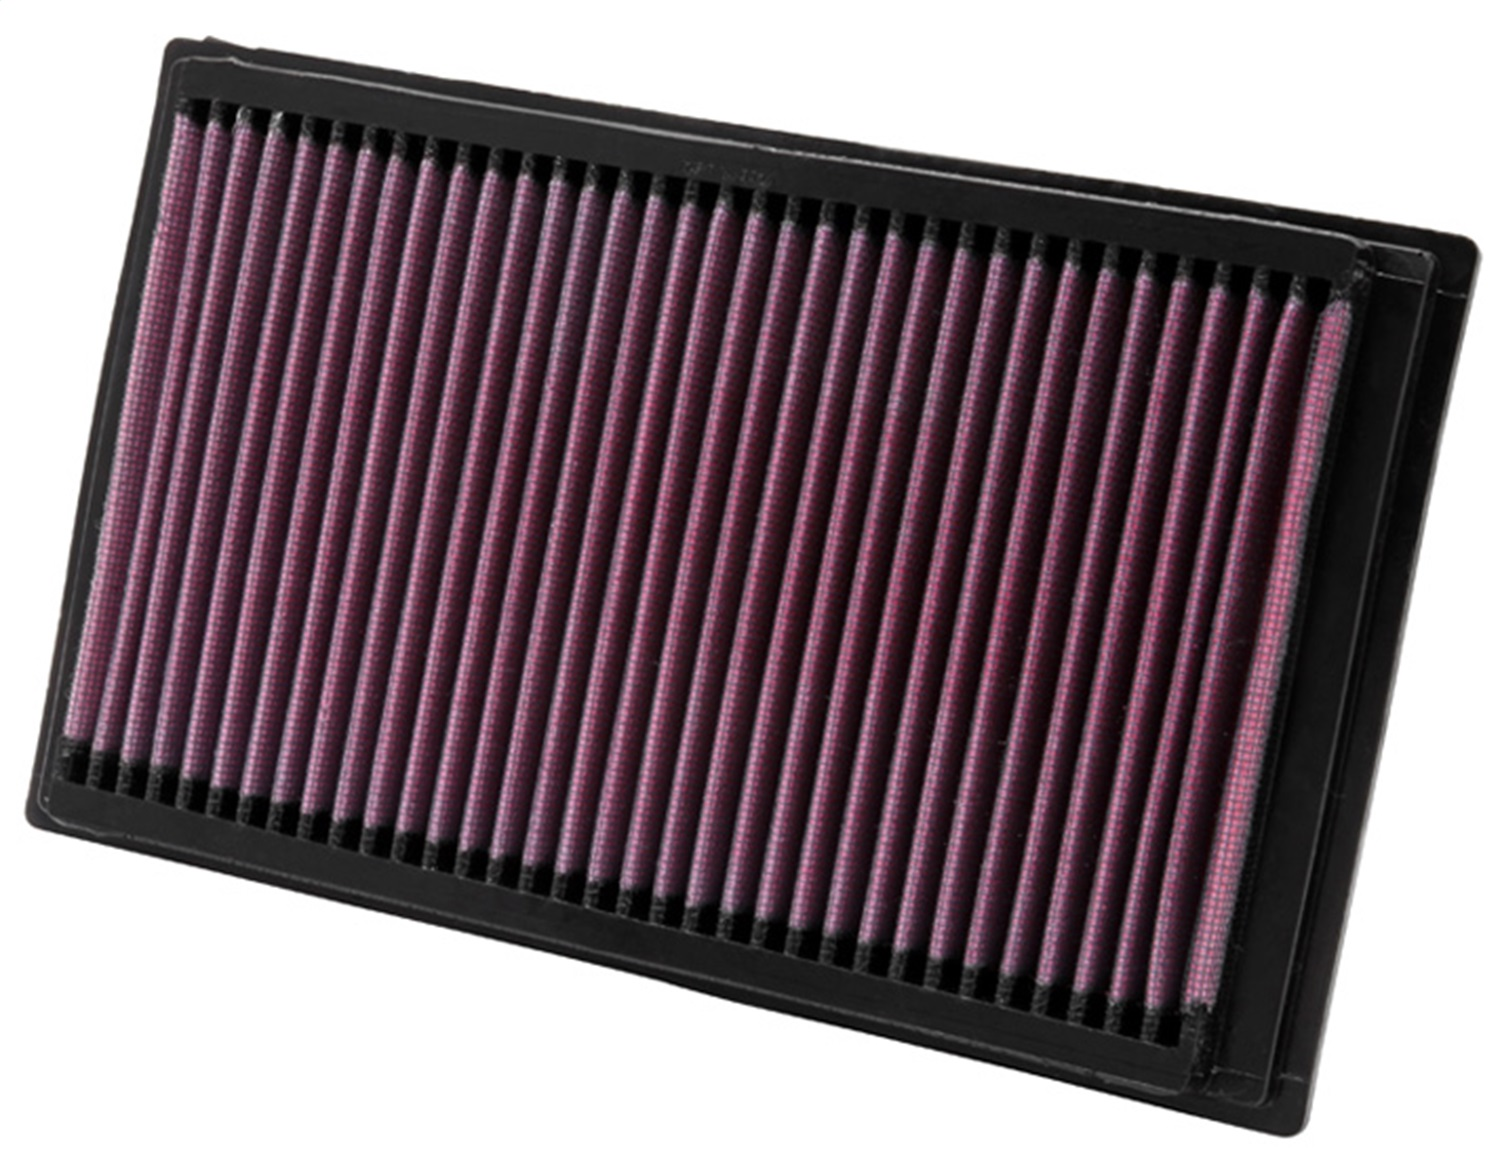 K&N Filters 33-2357 Air Filter Fits 06-12 Fusion Milan 33-2357